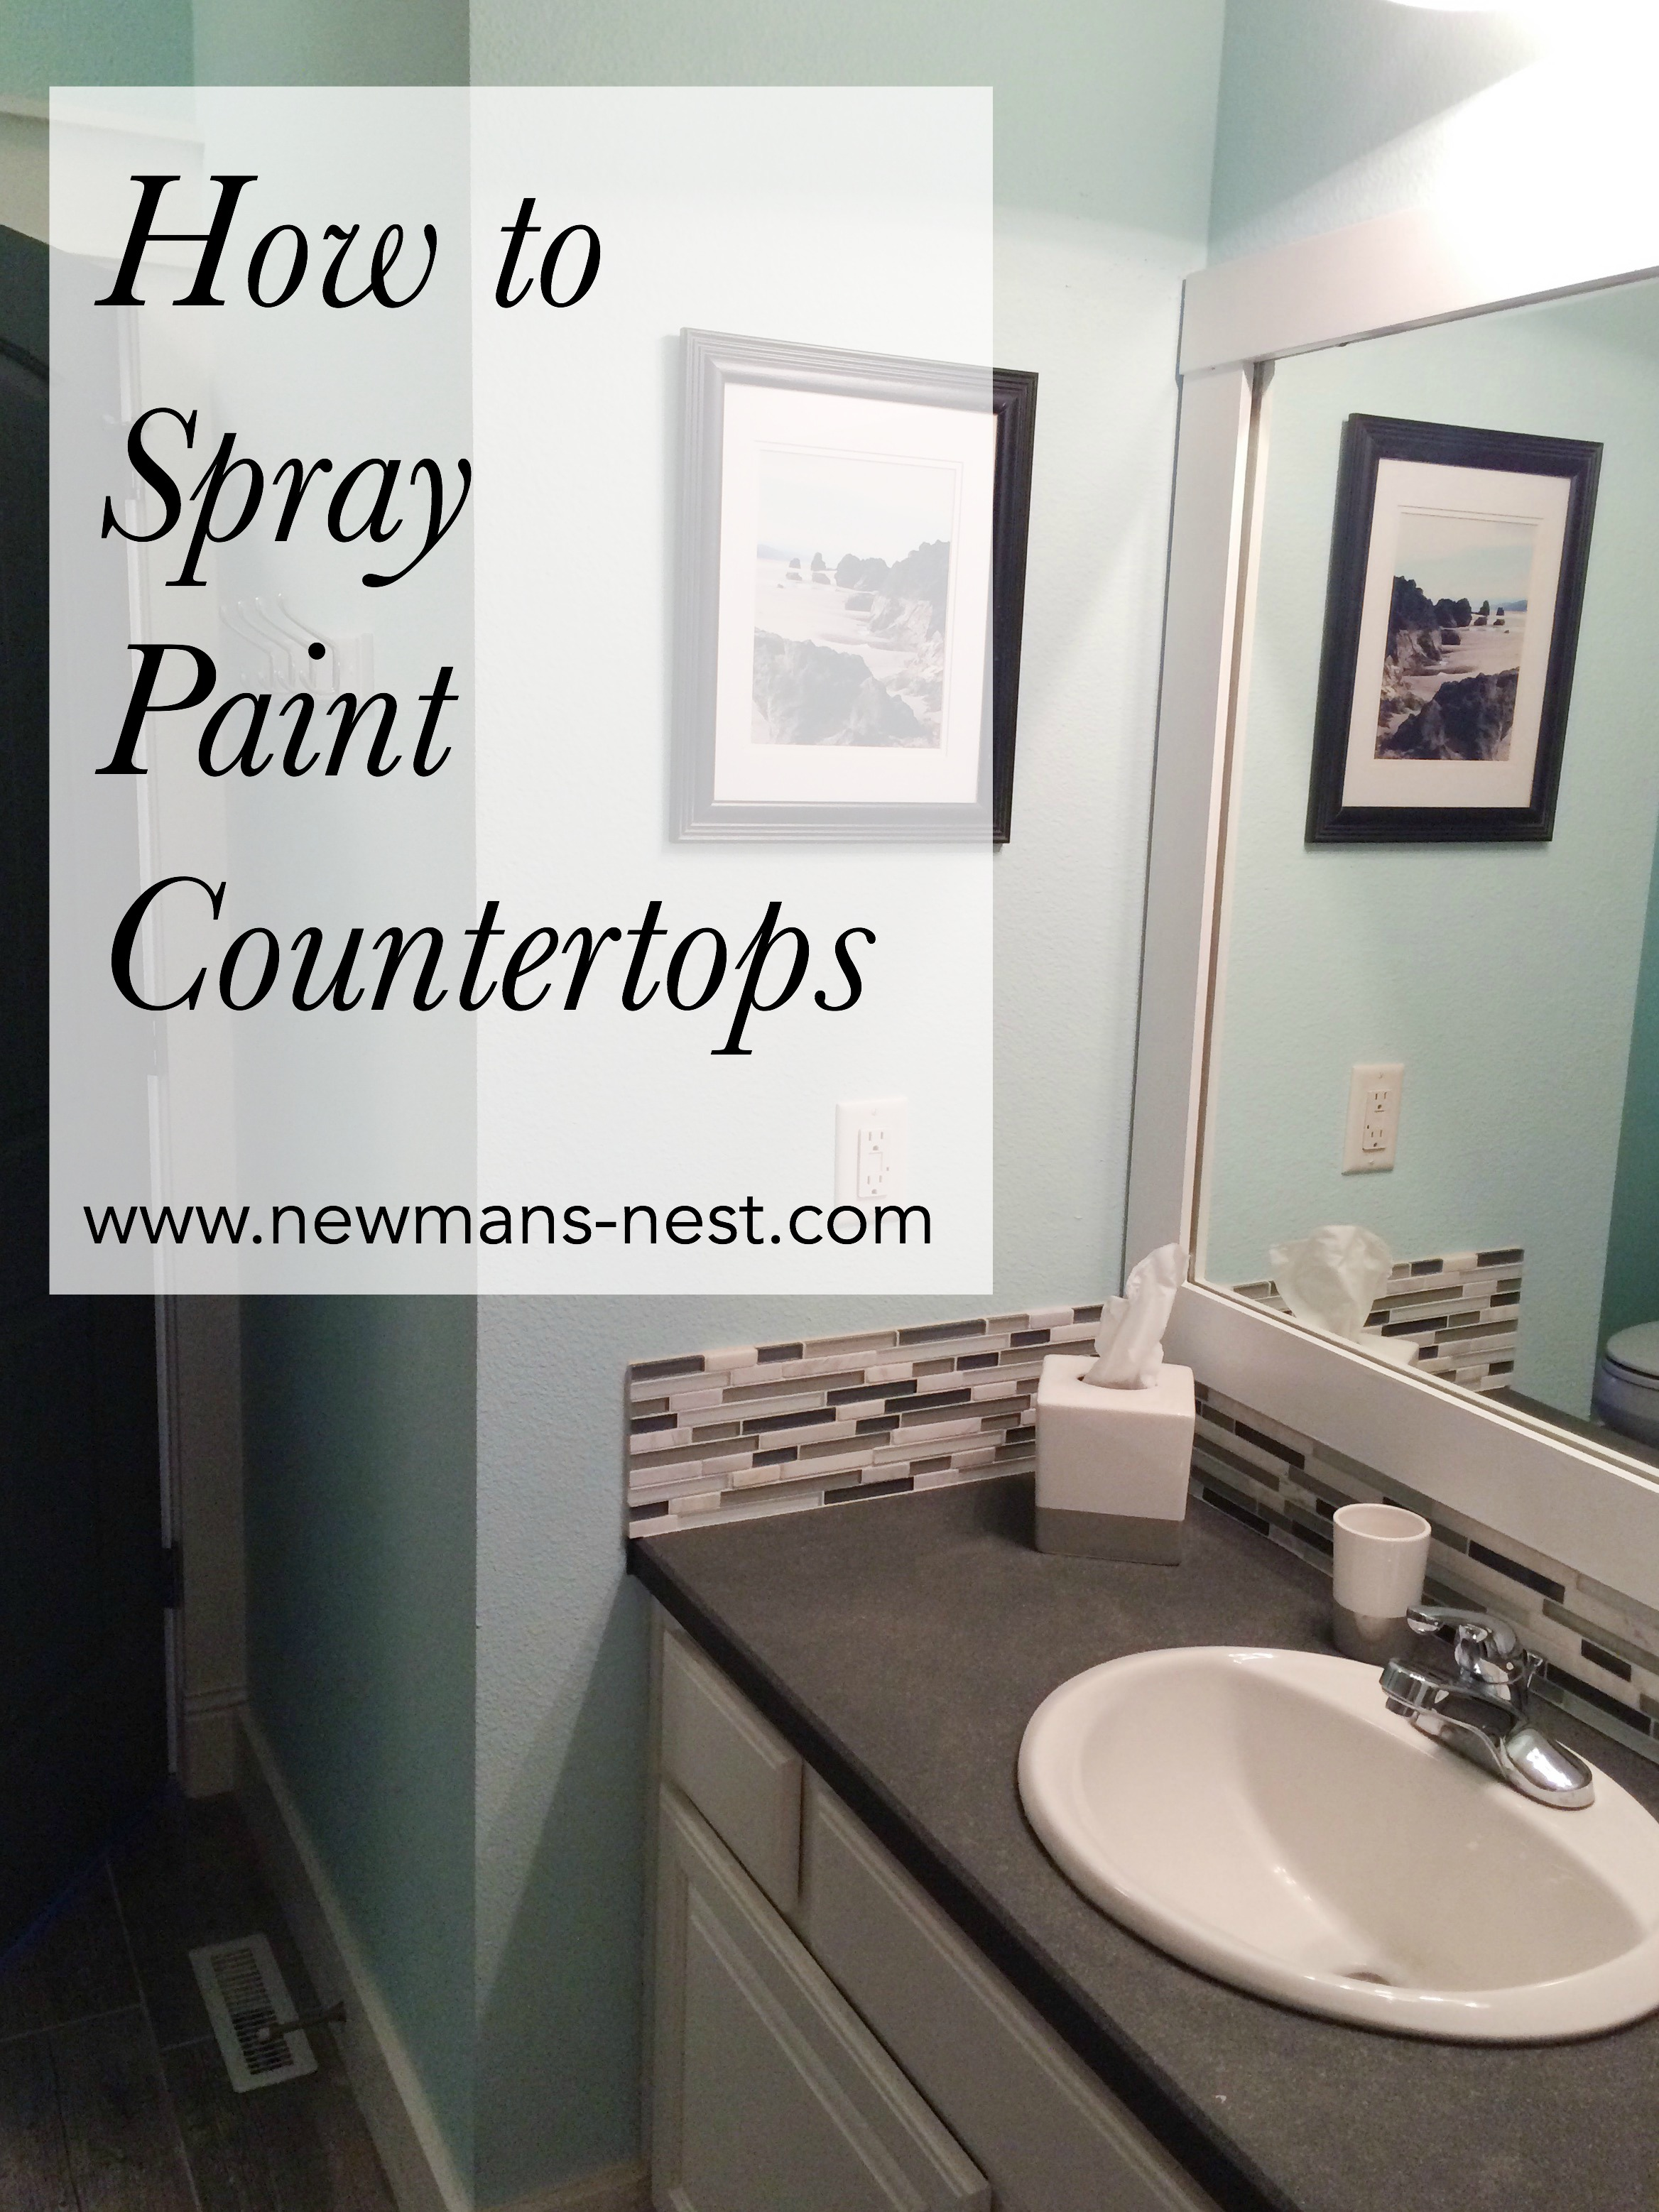 Spray paint bathroom countertop